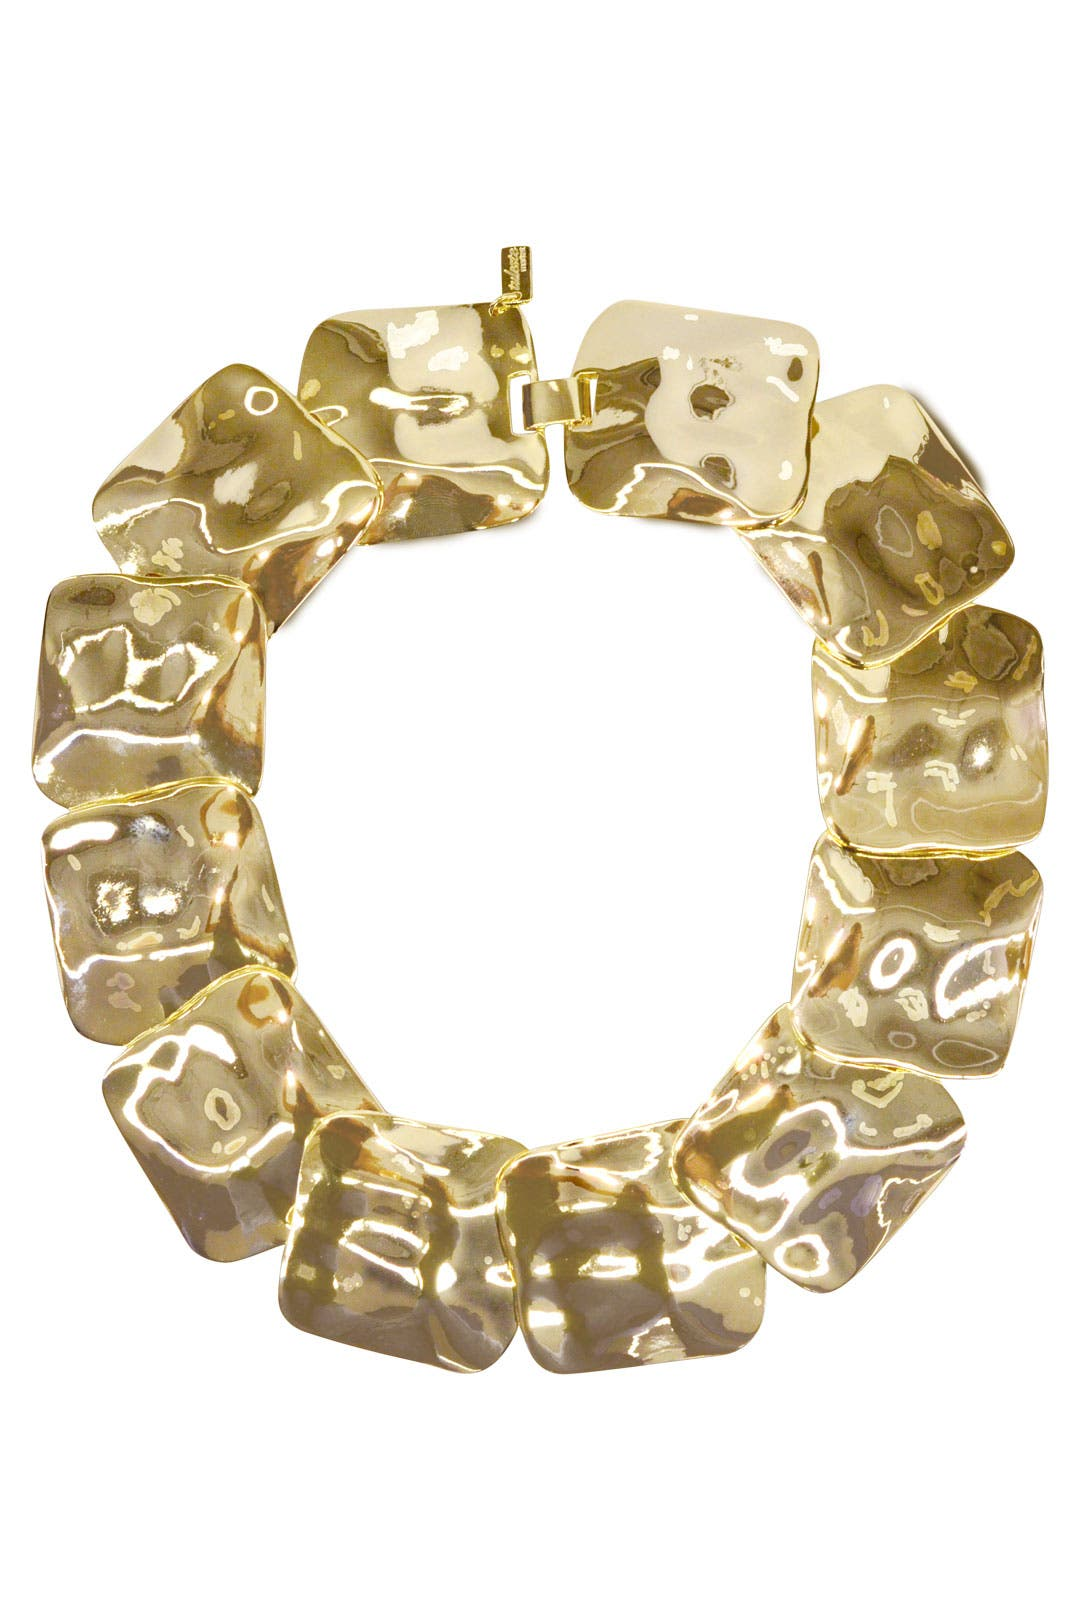 Hammered Squares Necklace by Tuleste Market